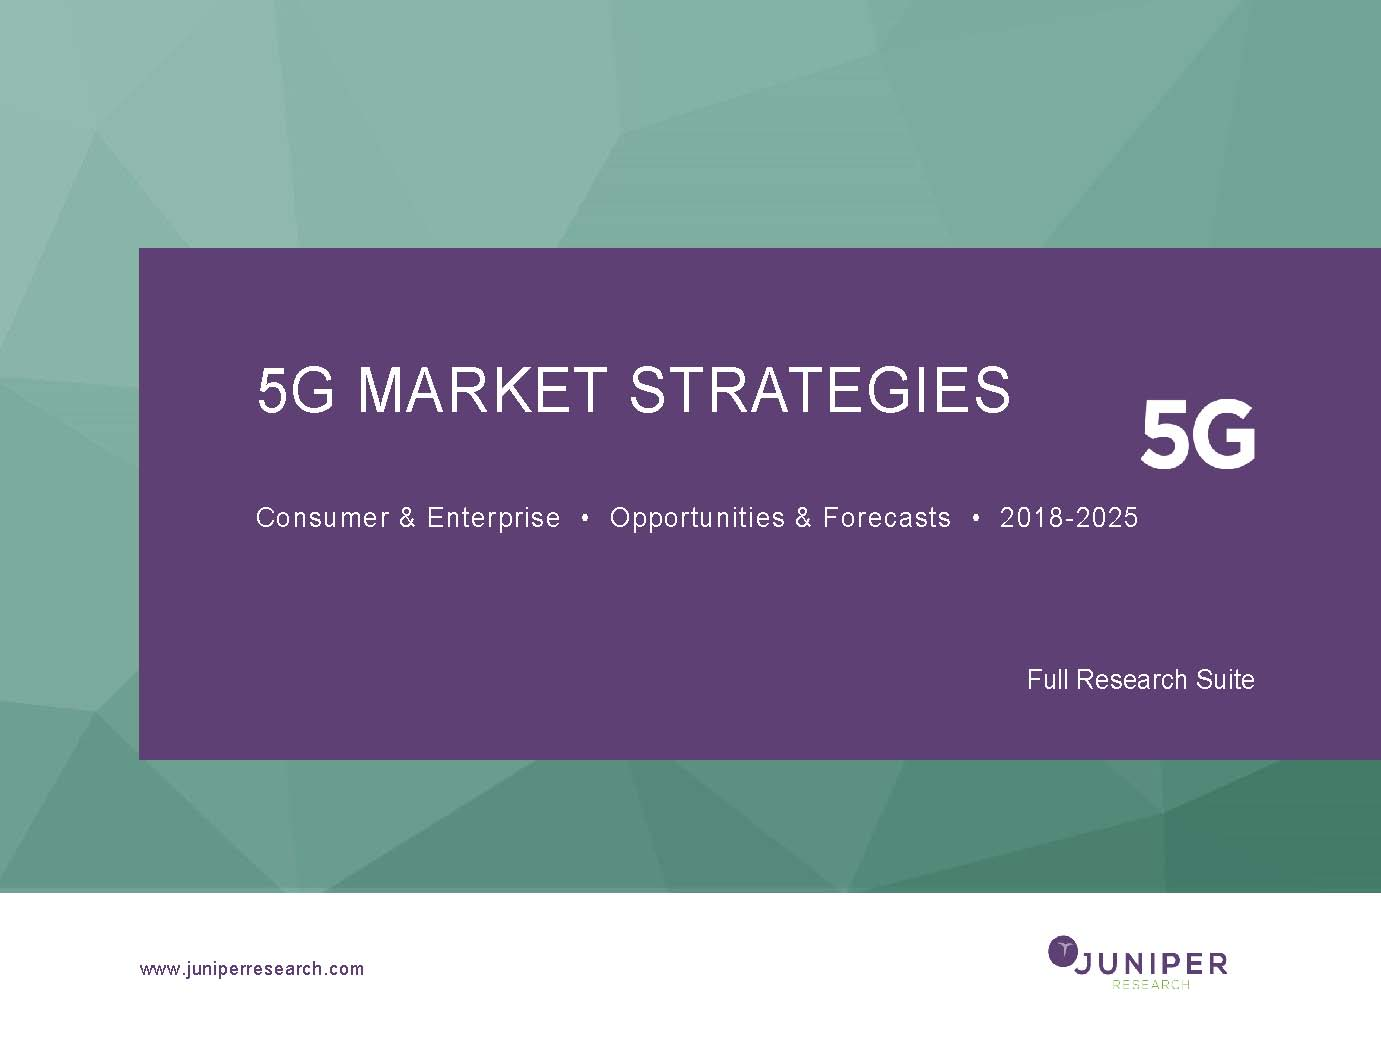 5G Market Strategies: Consumer & Enterprise Opportunities & Forecasts 2018 - 2025